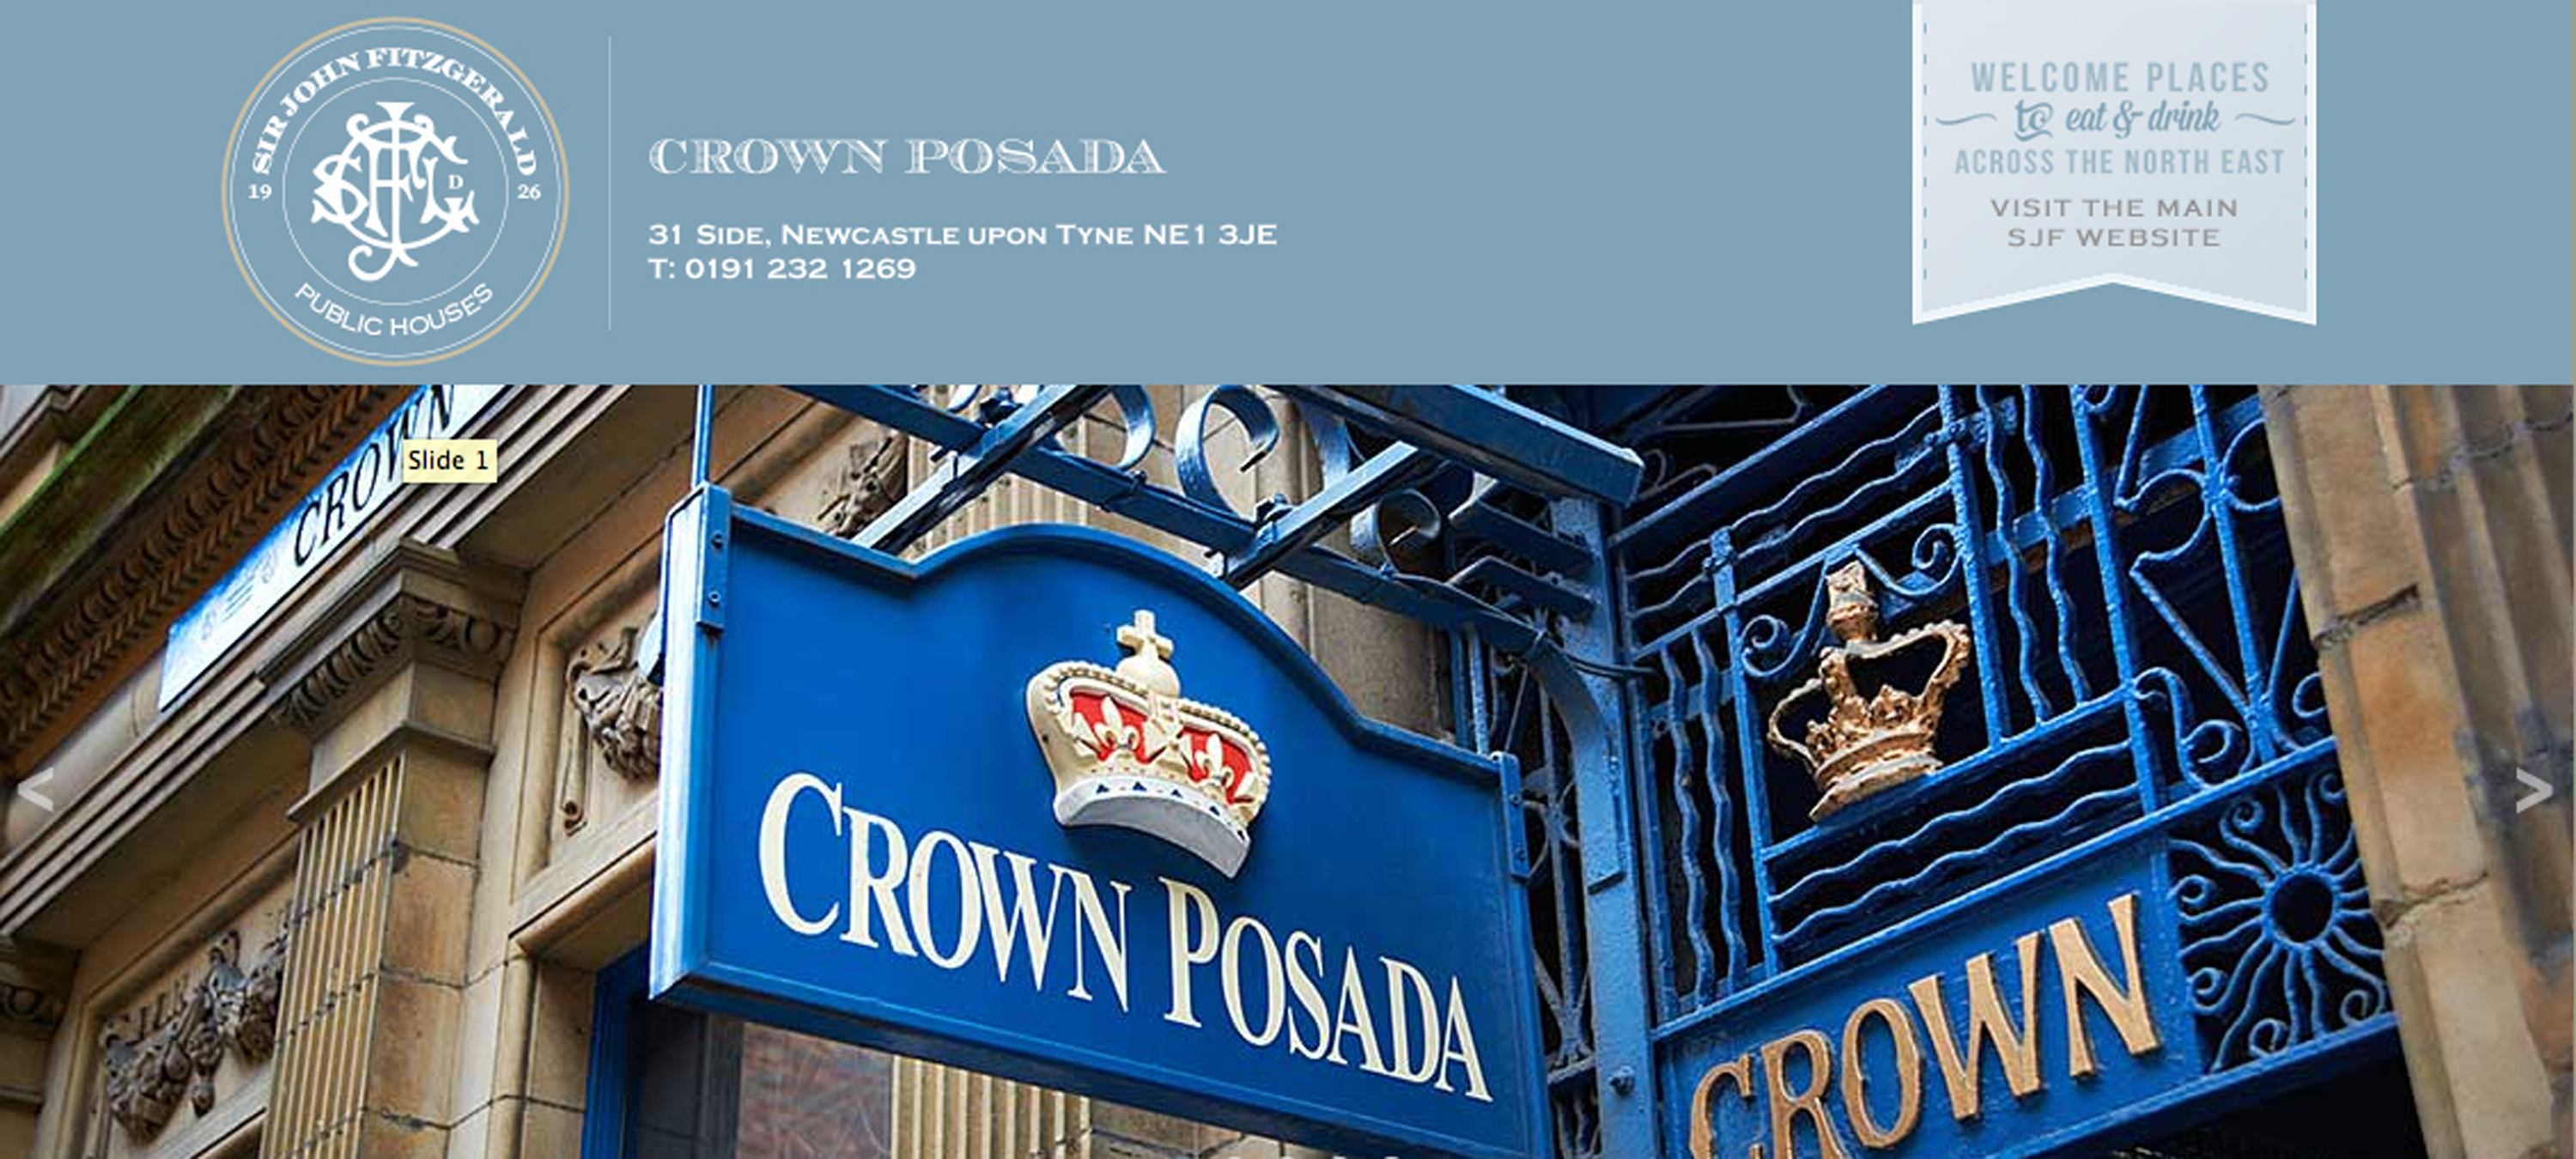 Crown Posada Newcastle SJF pub company